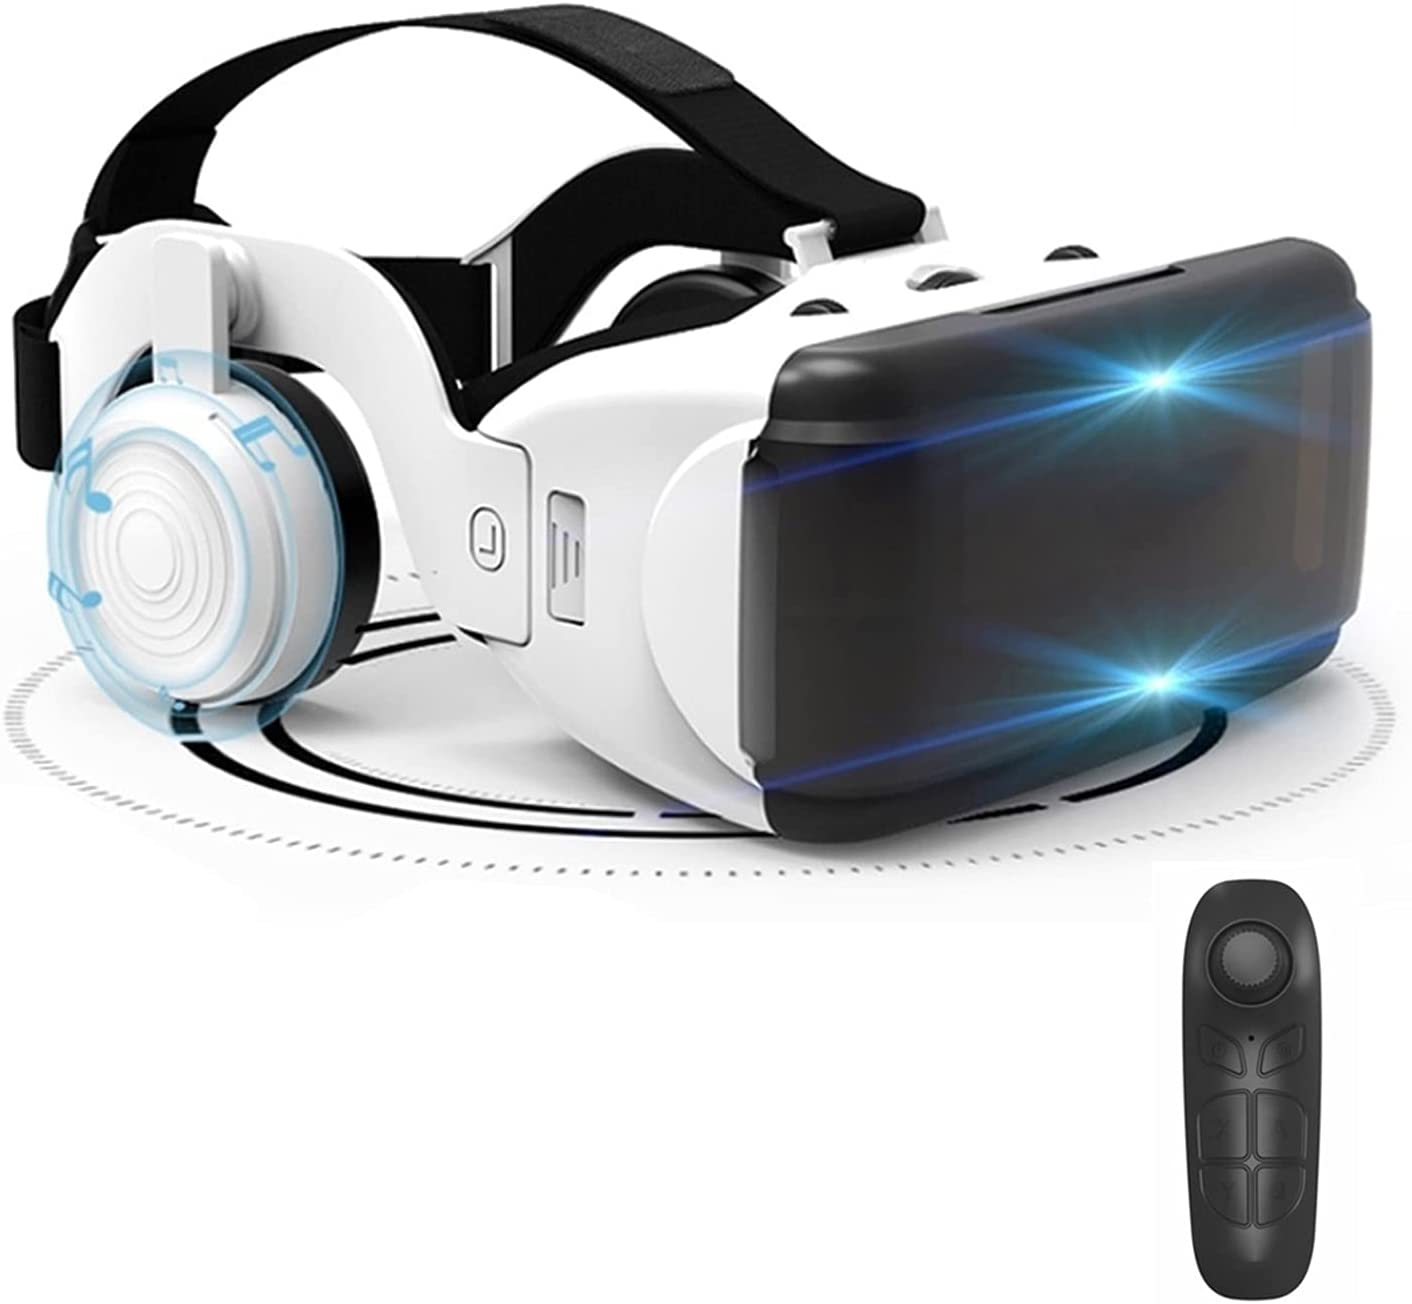 VR Headset with Controller Bluetooth Virtual Reality Headsets 3D Glasses VR Goggles for 3D VR Movies Video Games for iPhone 12/11/Pro/X/Xs/Max/XR/Mini/8/7/6, for Android Samsung S/20/10/9/8/Plus/Note